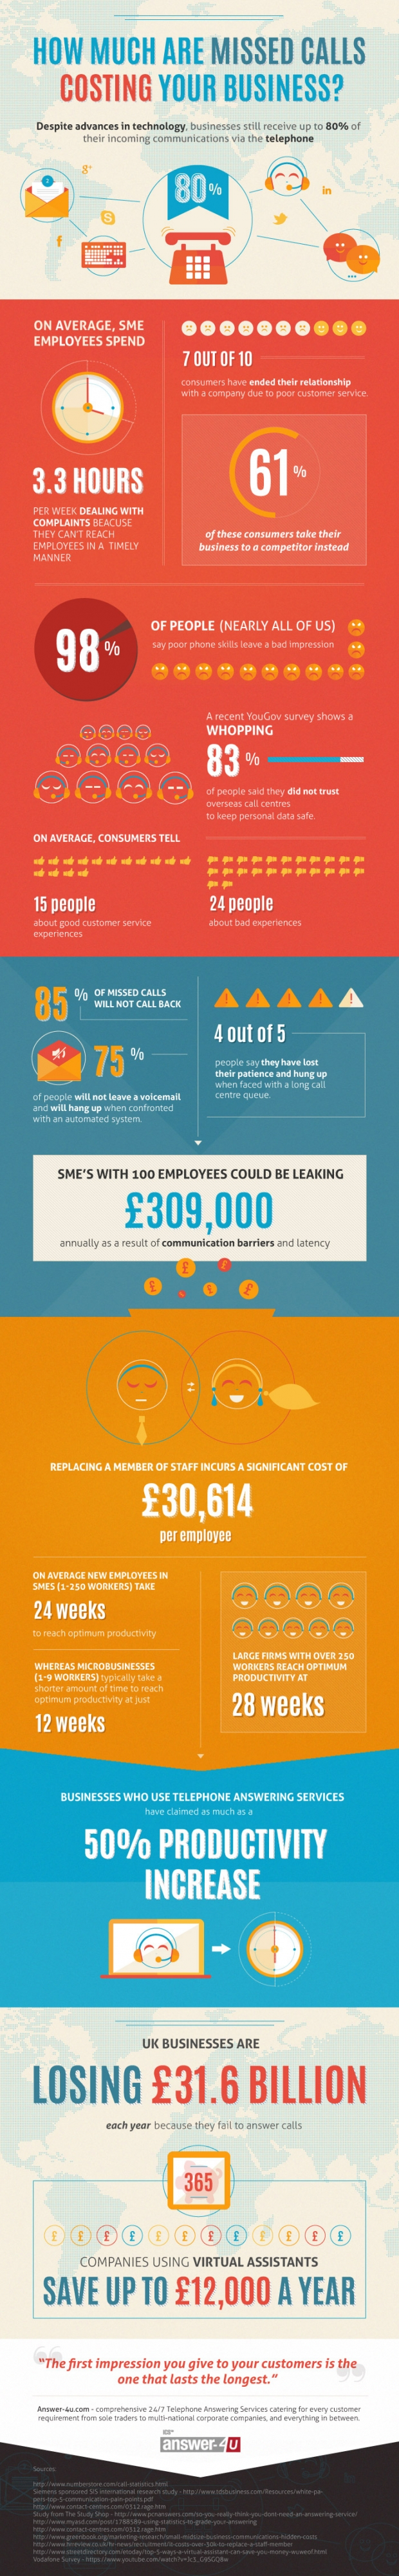 how-much-are-missed-calls-costing-your-business-info